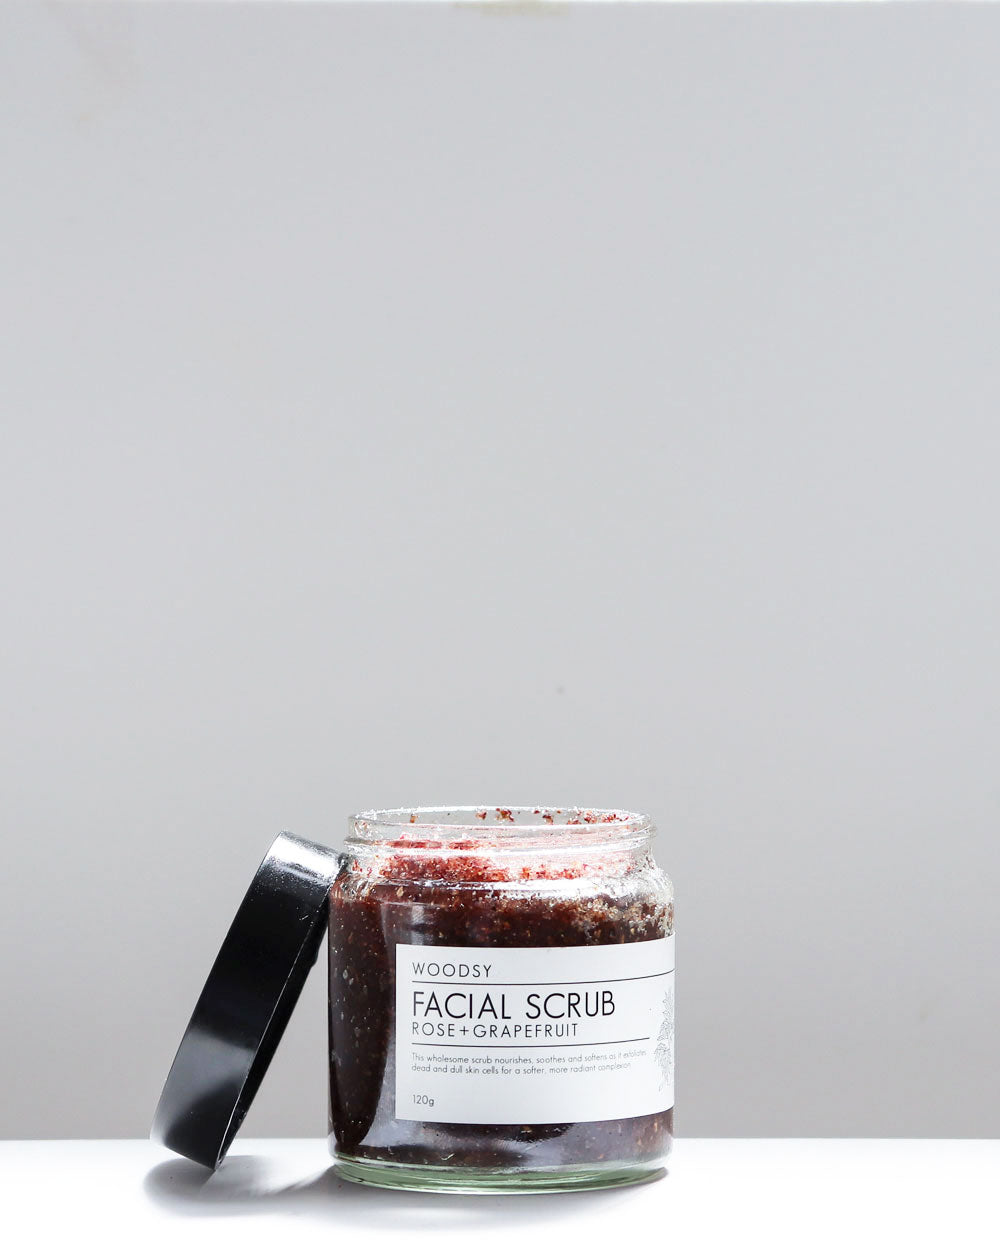 Facial Scrub / Rose & Grapefruit / Woodsy Botanics